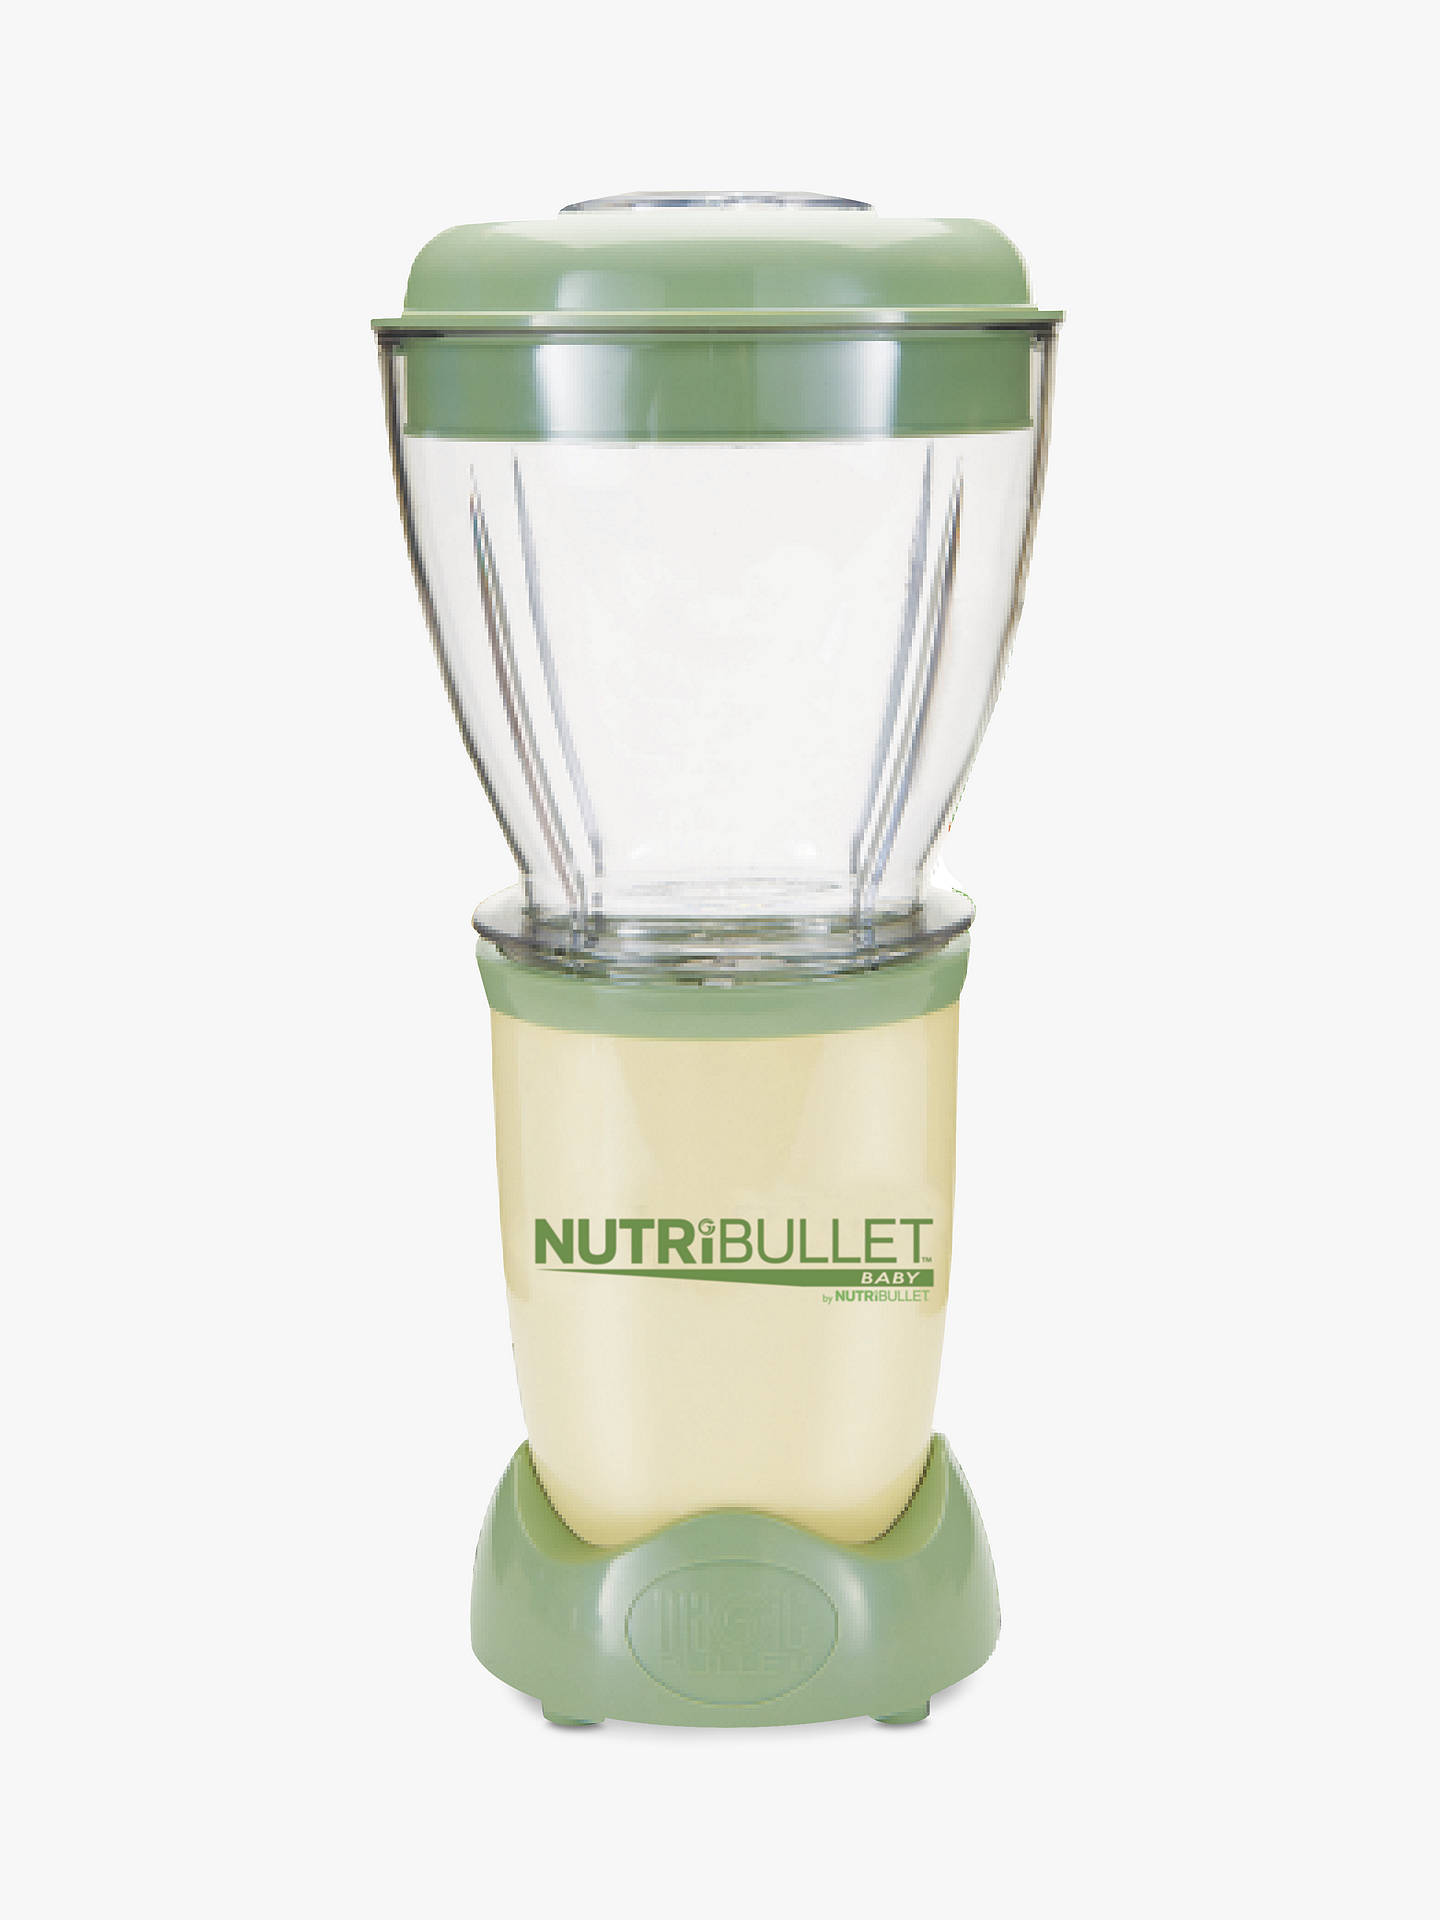 BuyNutriBullet Baby Food Processor Online at johnlewis.com